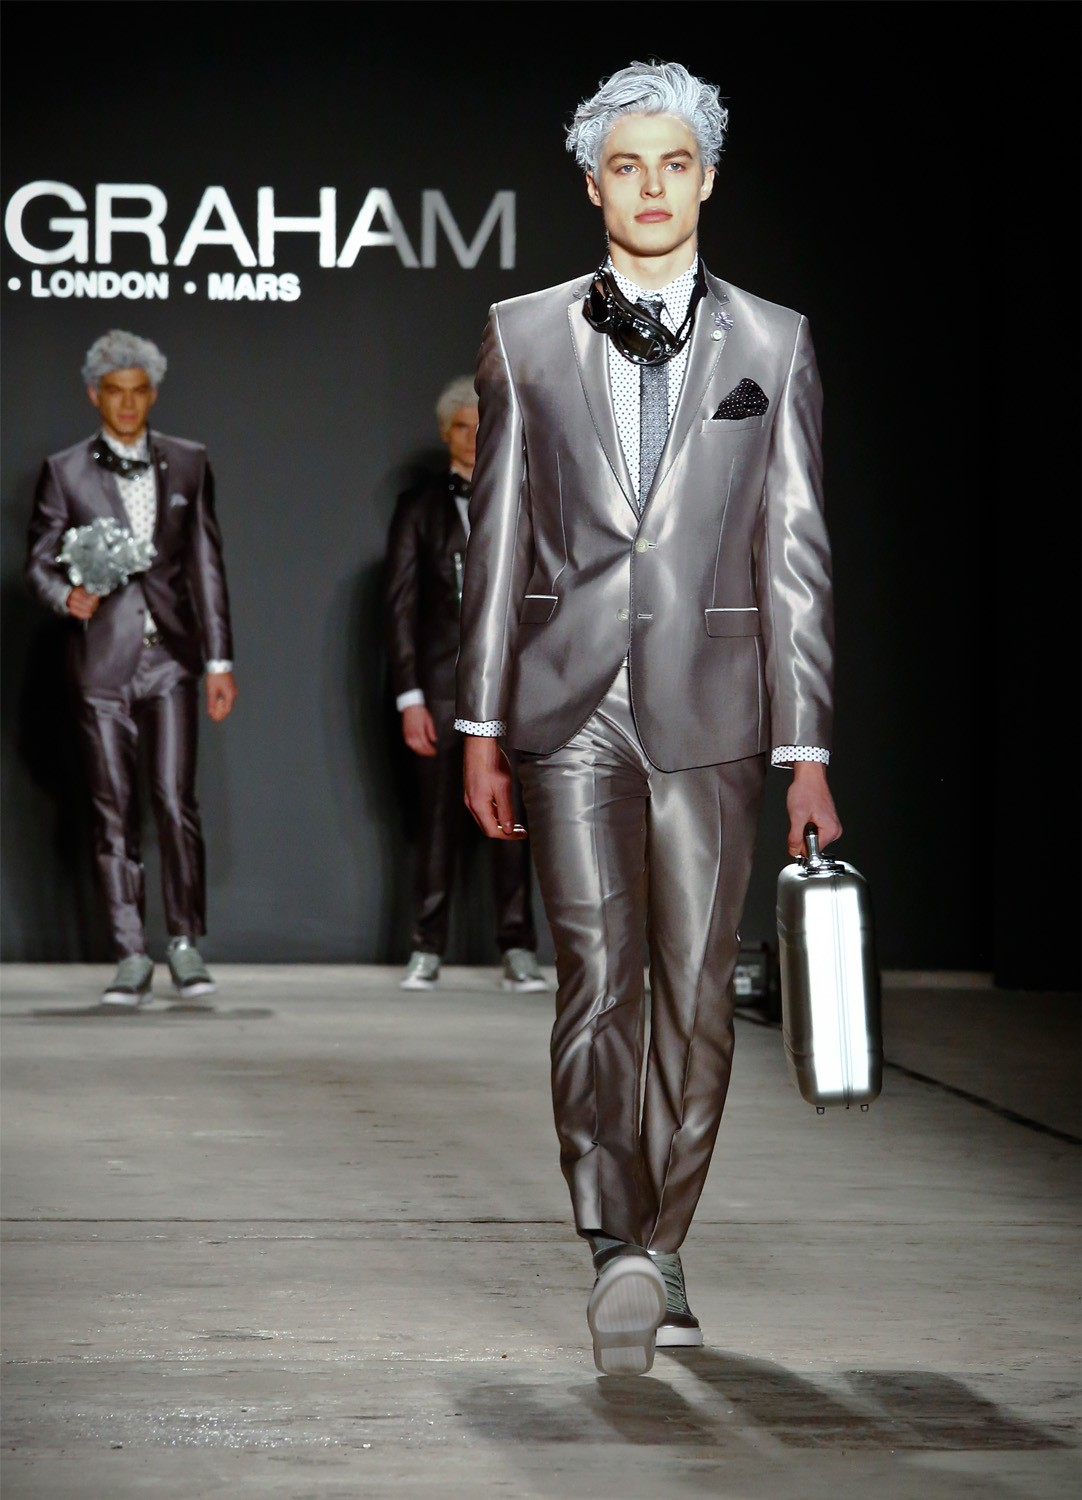 At mens fashion week a collection was out of this world fashion from the nick graham collection is modeled during mens fashion week tuesday jan 31 2017 in new yorkap photobebeto matthews stopboris Image collections